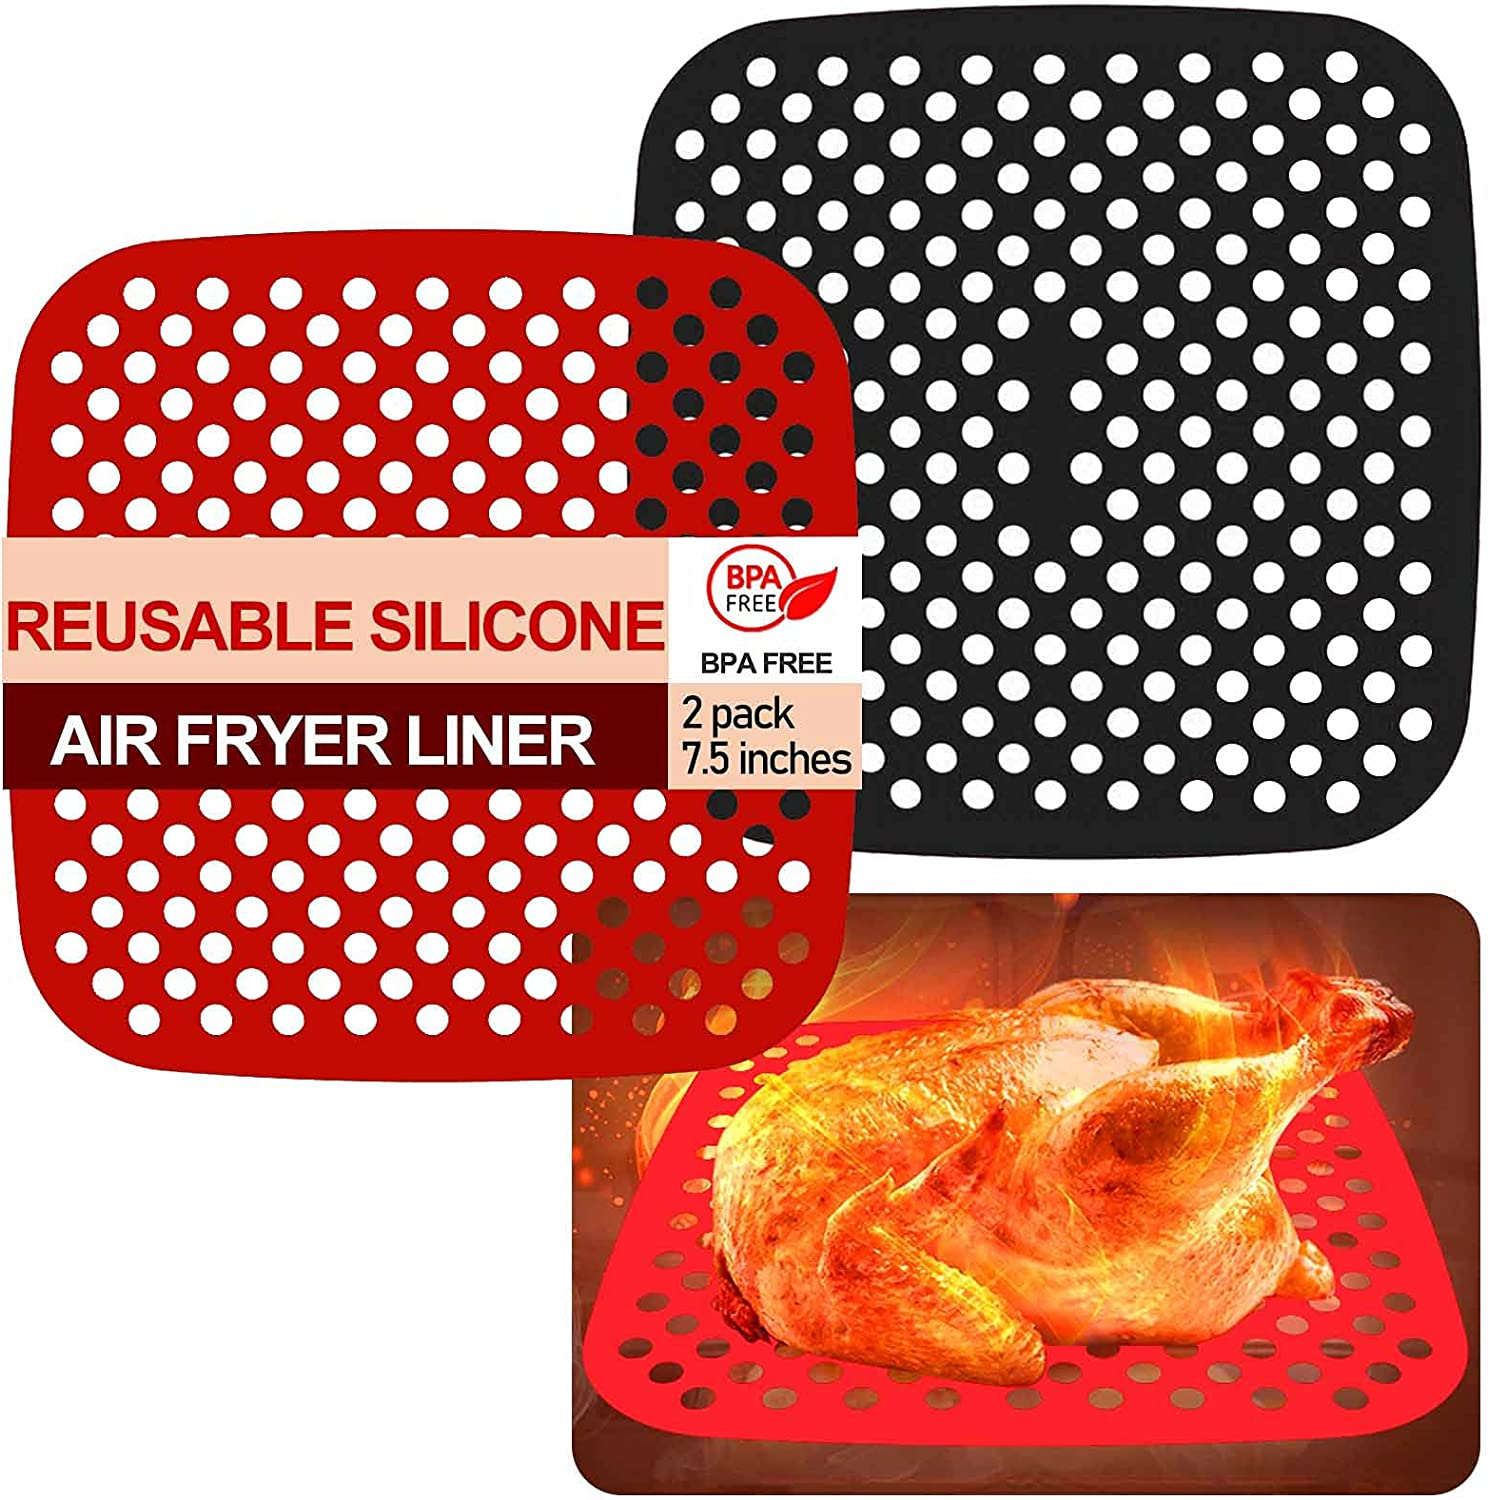 Connfiton Reusable Air Fryer Liners silicone,7.5 inch square,Non-Stick Silicone Air Fryer Basket Mats,Air Fryer Accessories For Ninja,Gourmia,Power XL,GoWise,Chefman,NuWave,and More,BPA Free -2 Pcs